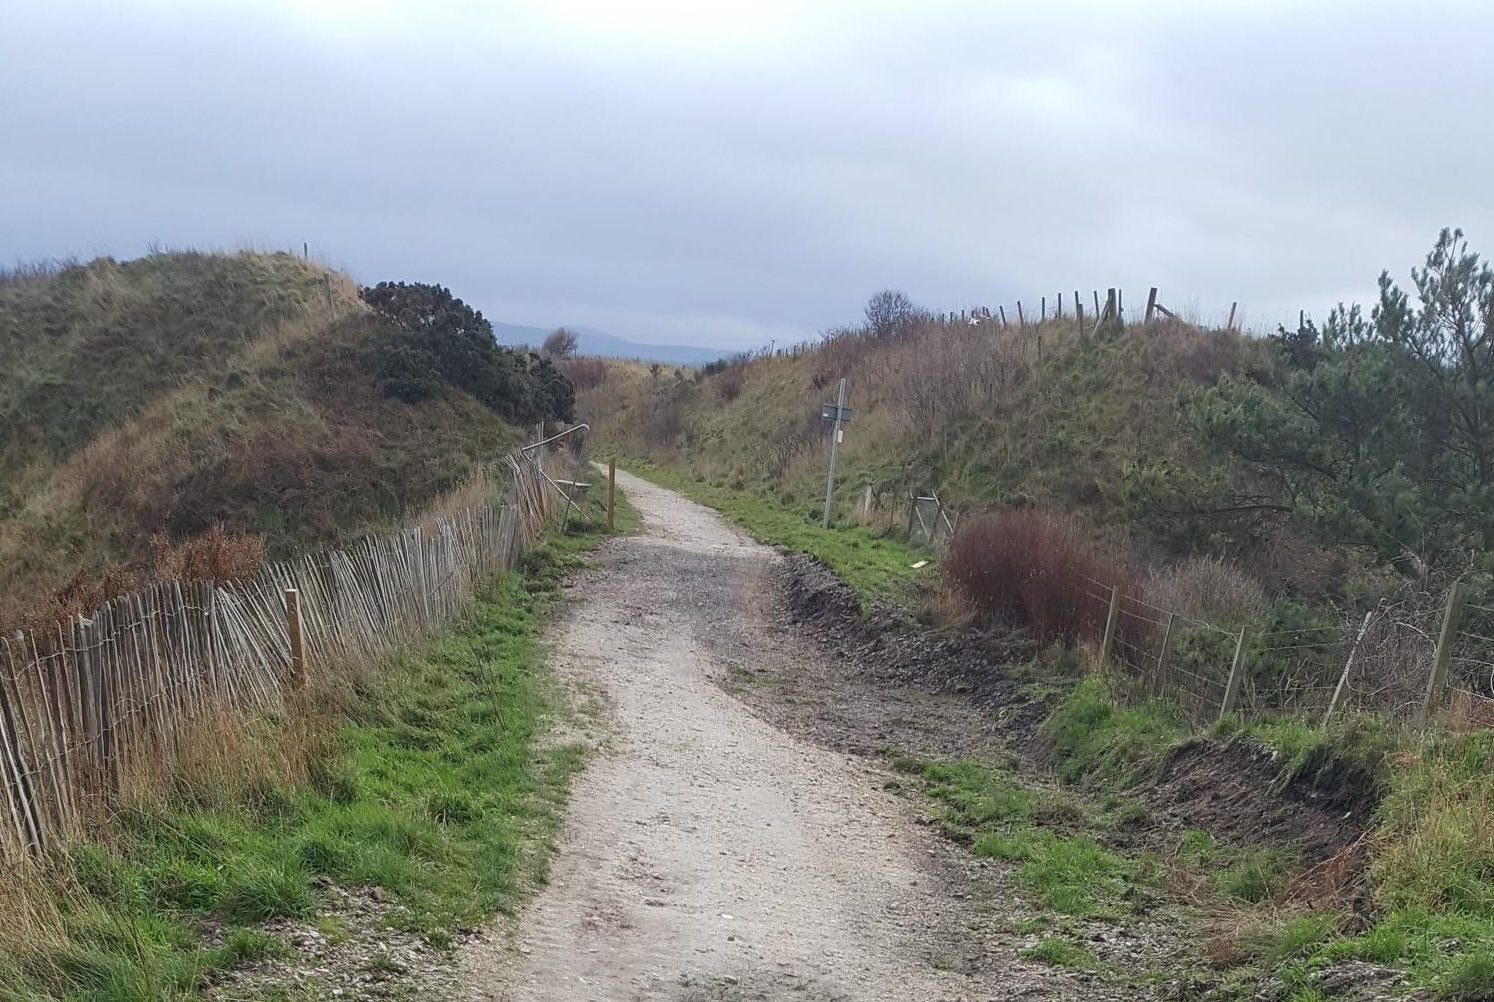 There are coastal paths between the likes of Cullen and Portknockie but no footpaths connecting Rothes to Craigellachie.